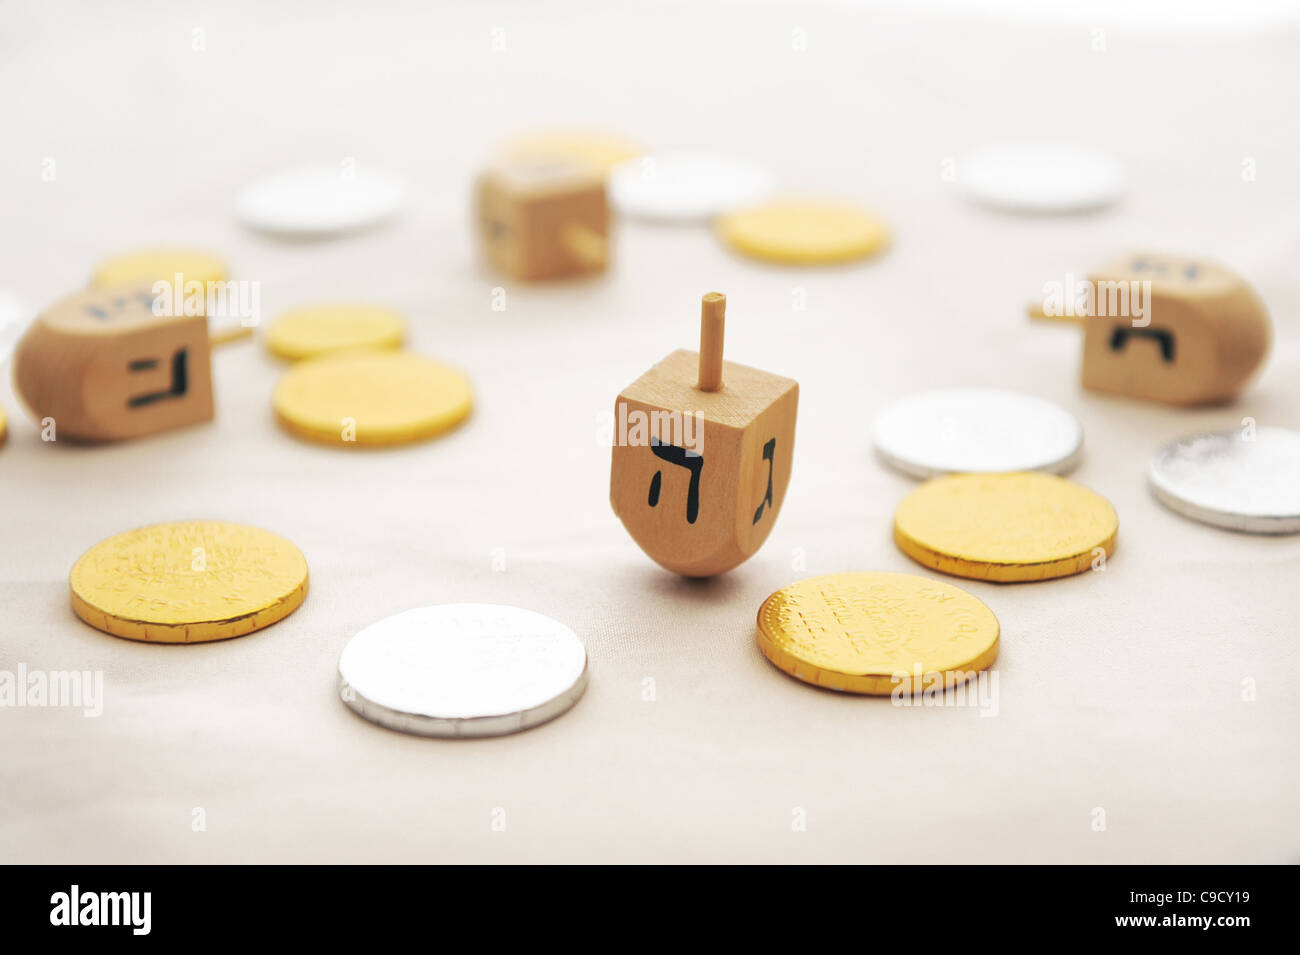 Photo of dreidels (spinng tops) and gelts (candy coins) for Hanukkah isolated on white - Stock Image